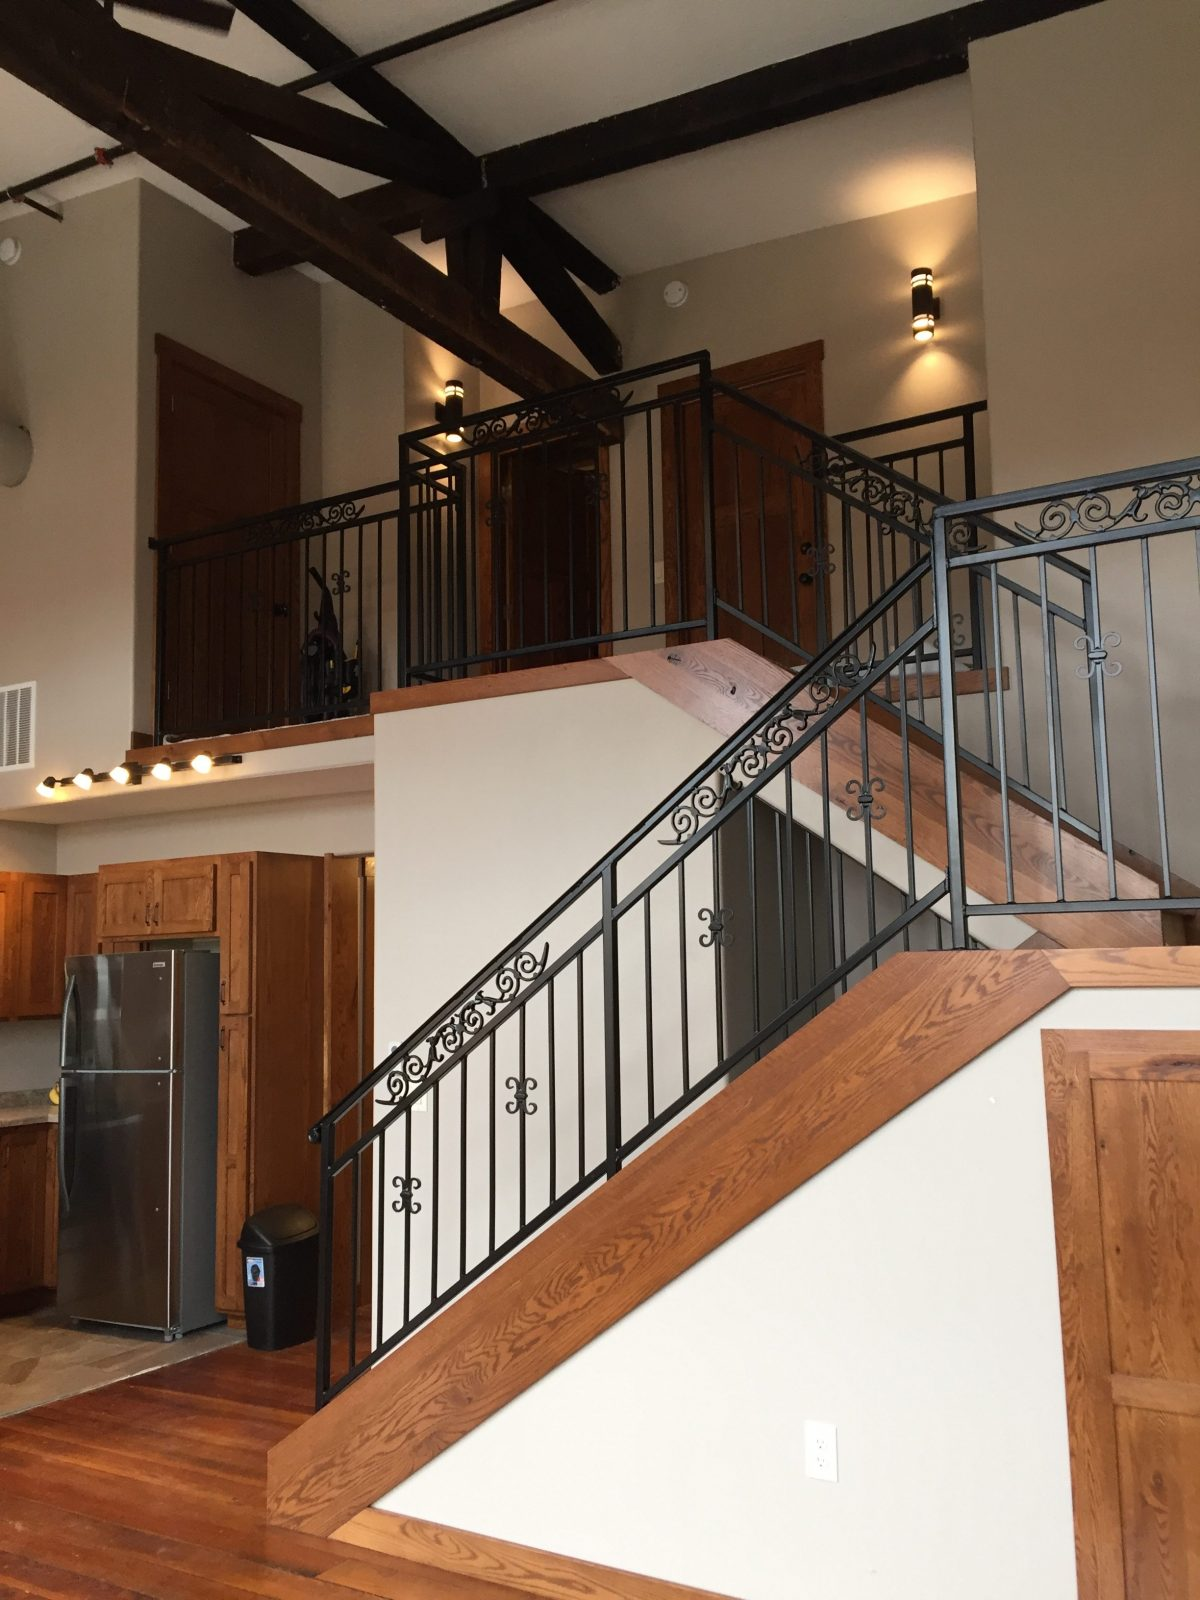 Ultimate 3 bedroom downtown winona lofted apartment custom everything off campus student for 1 bedroom apartments winona mn